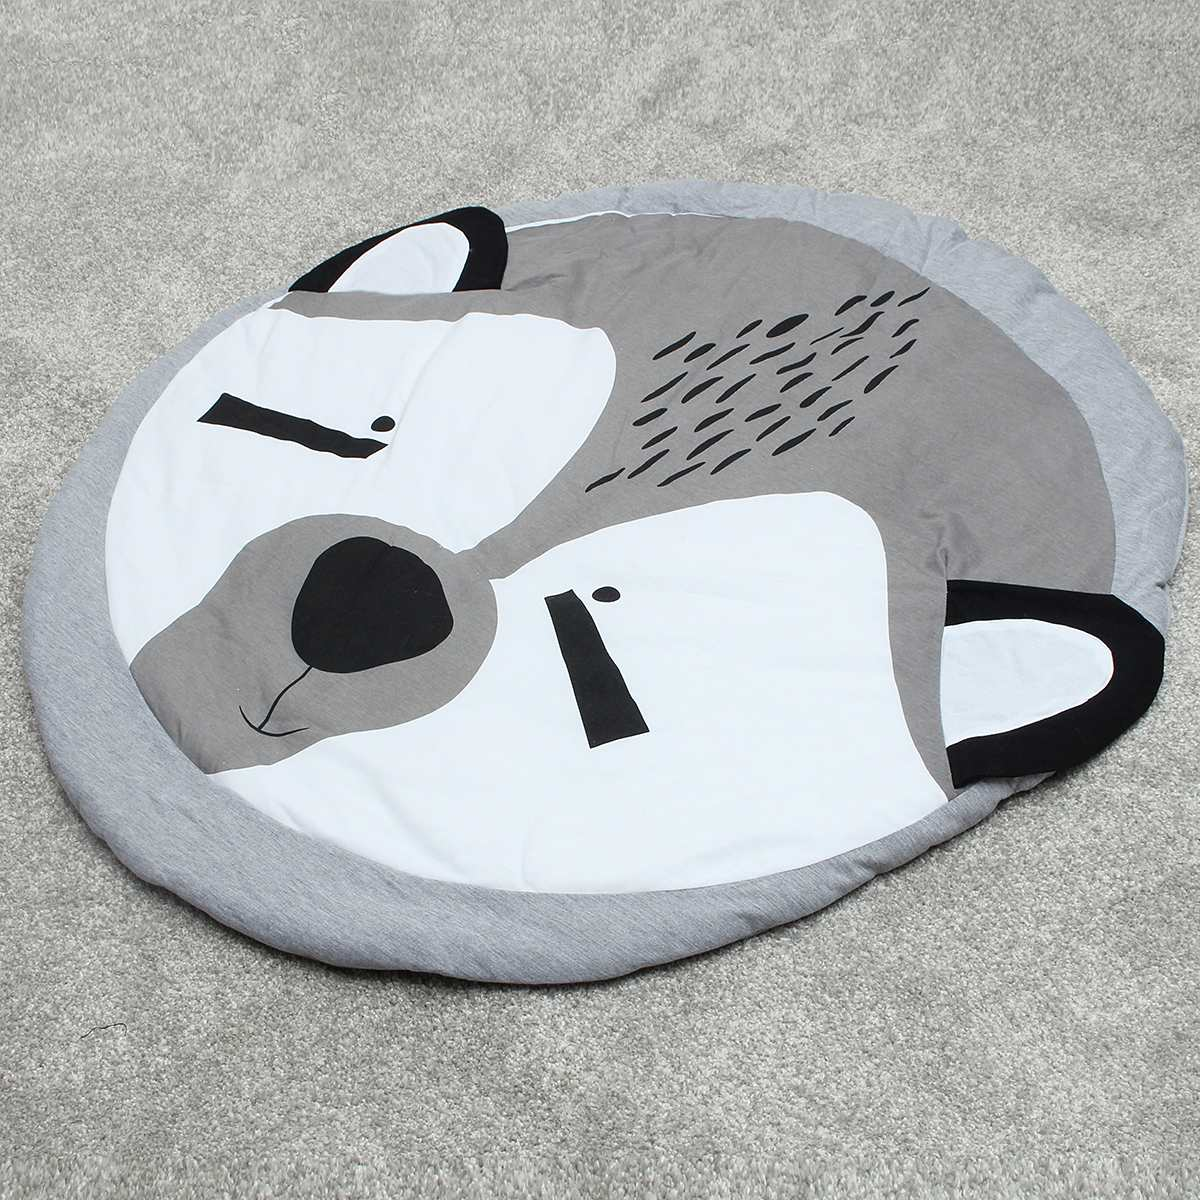 Soft 100% Cotton Kids Baby Infant Play Crawl Game Cartoon Mat Round Carpet Home